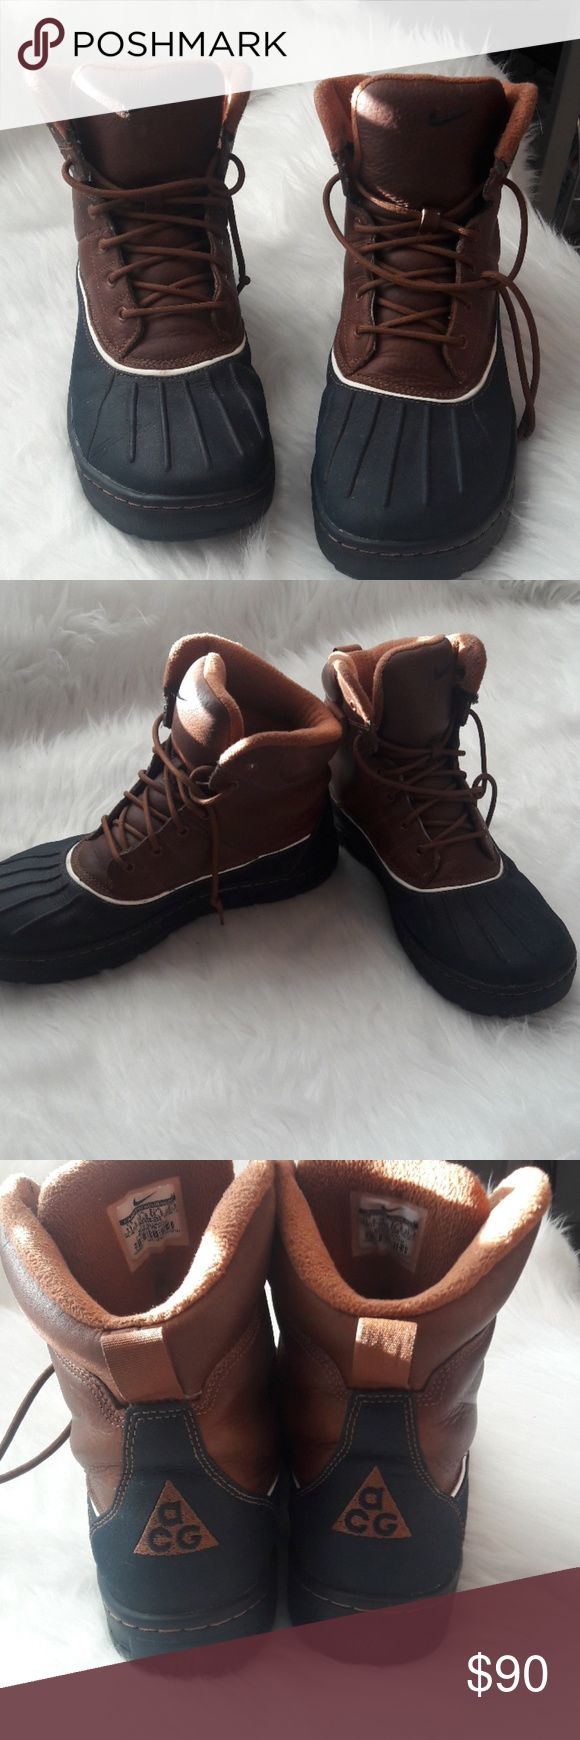 NIKE WOODSIDE mens size 11.5 Gently worn mens NIKE Woodside boots size 11.5 Good condition.  Bundle and Save! Nike ACG Shoes Boots